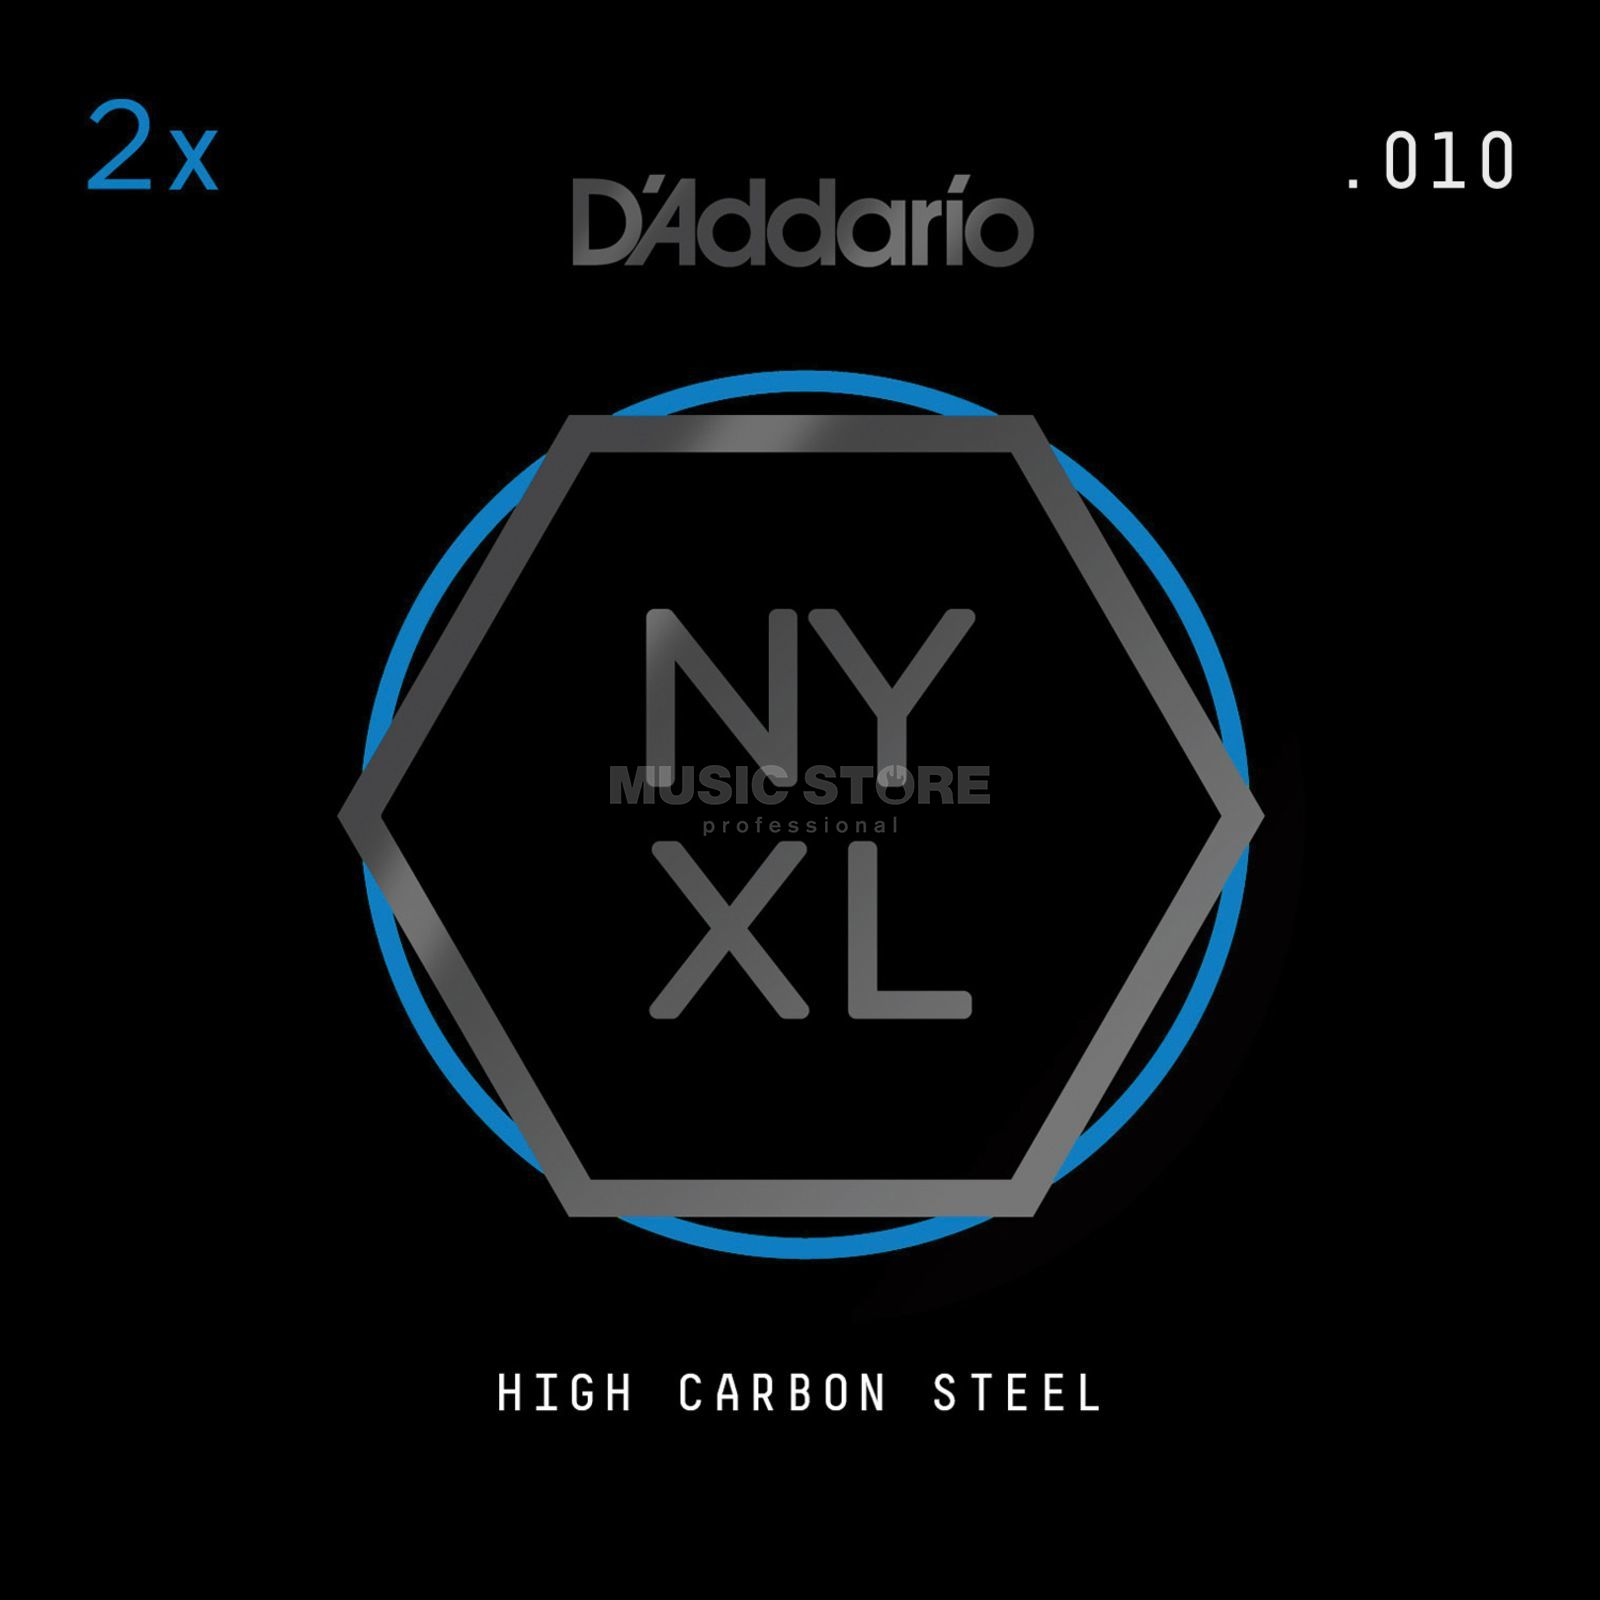 D'Addario NYPL010 Plain Single String 2-Pack - High Carbon Steel Zdjęcie produktu